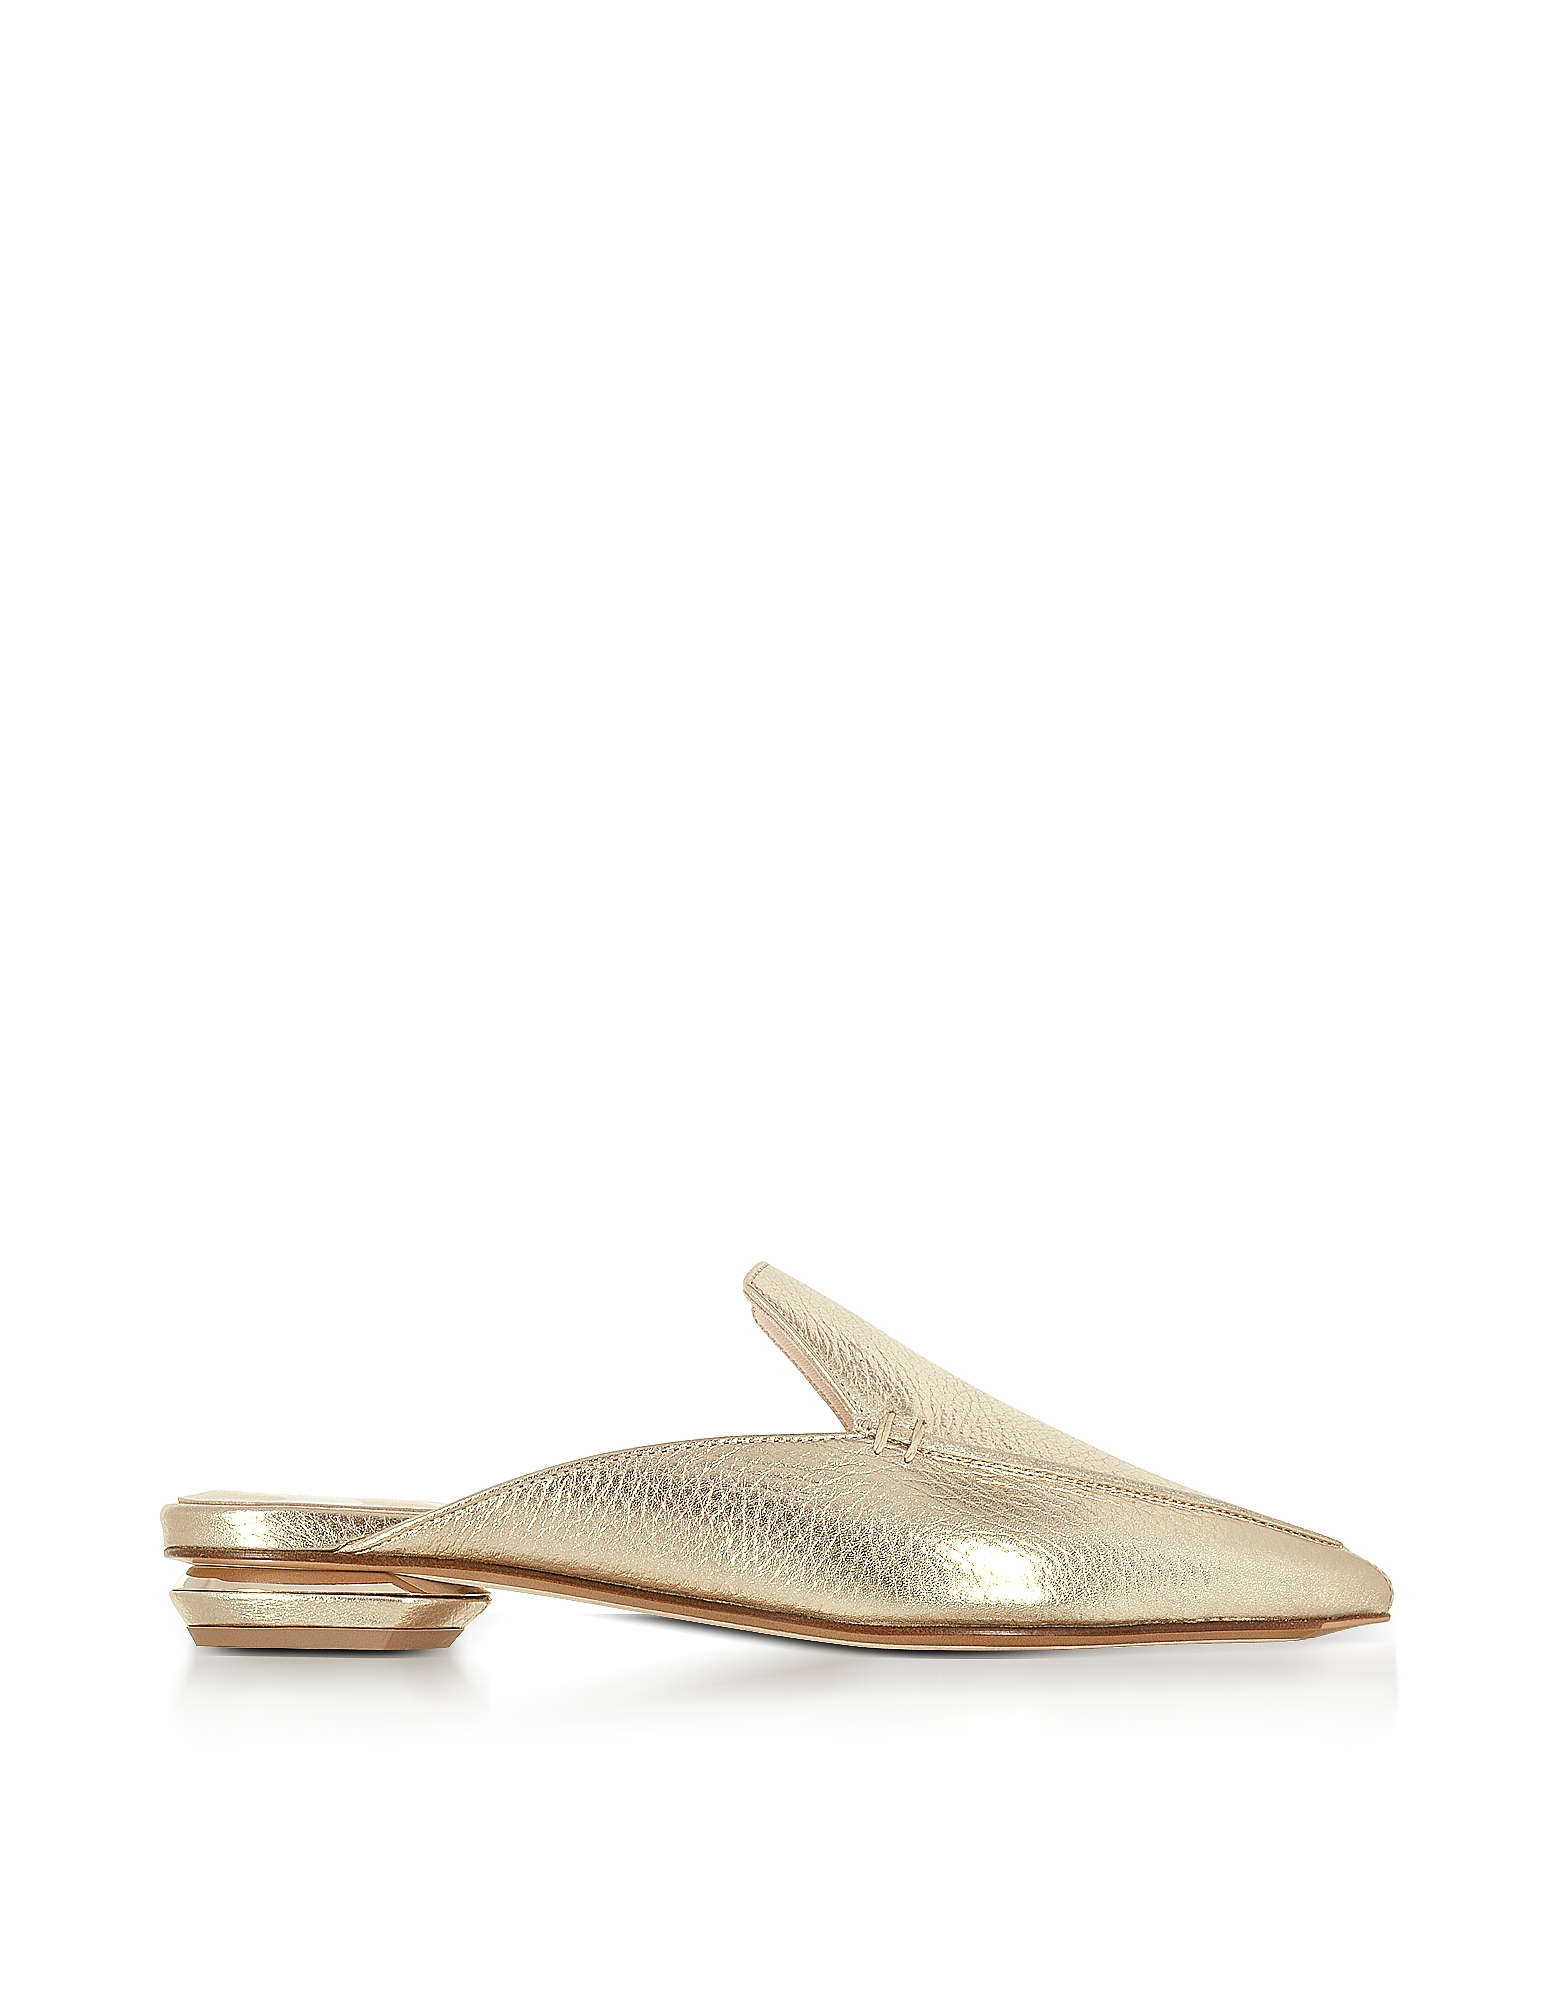 Nicholas Kirkwood Shoes, Beya Platino Metallic Tumbled Leather Loafer